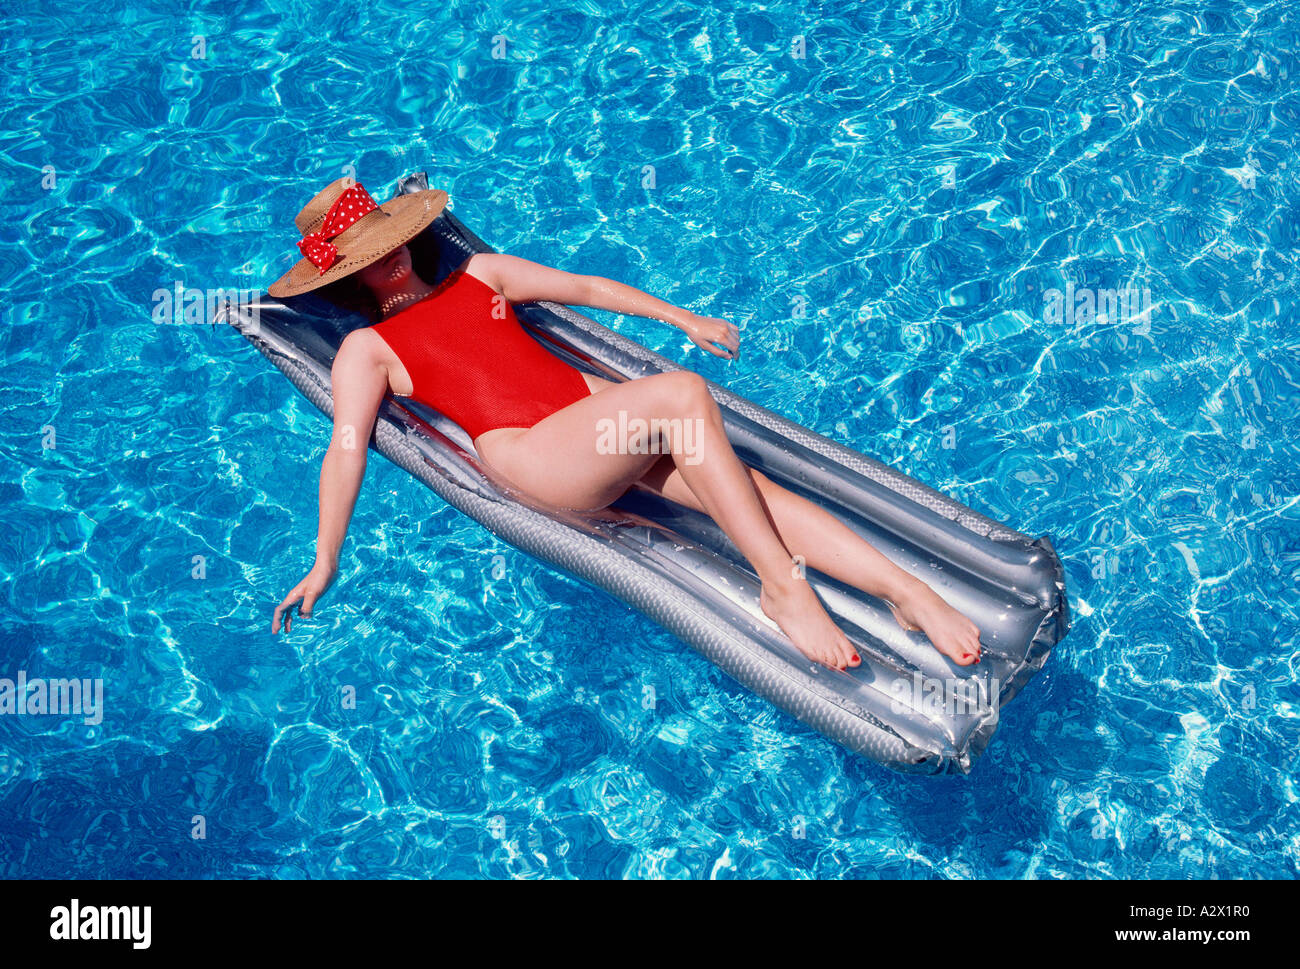 Young woman in red, one-piece swimsuit floating on airbed in ...